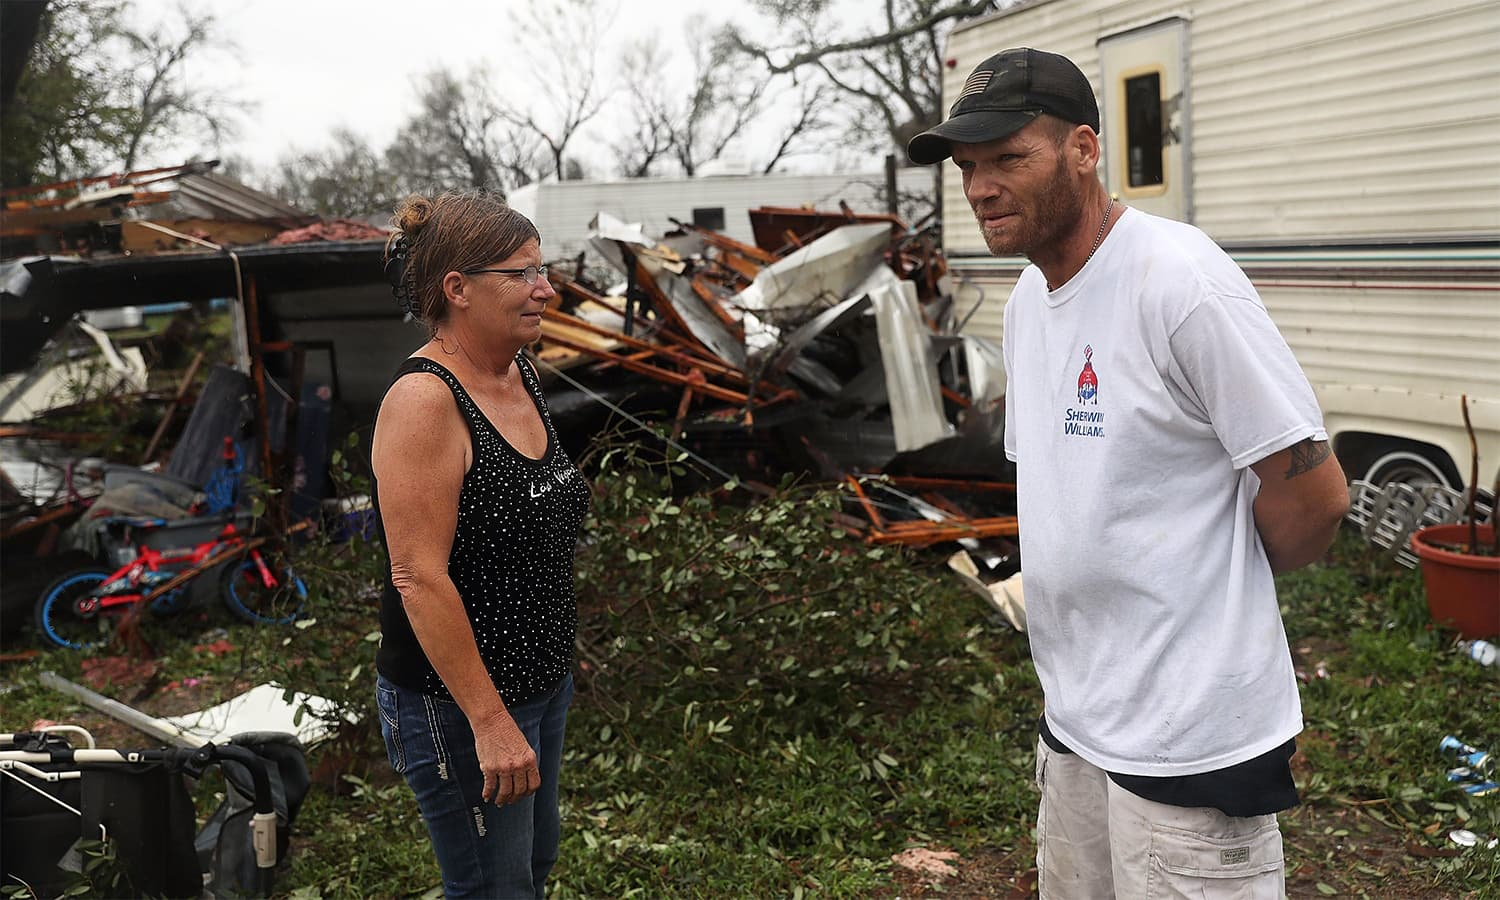 A resident stands near what is left of the trailer where he spent most of the night when Hurricane Harvey hit Rockport, Texas. He said he left the home a few hours after the storm hit and was thankful he did or he thought he would not be alive now. — AFP